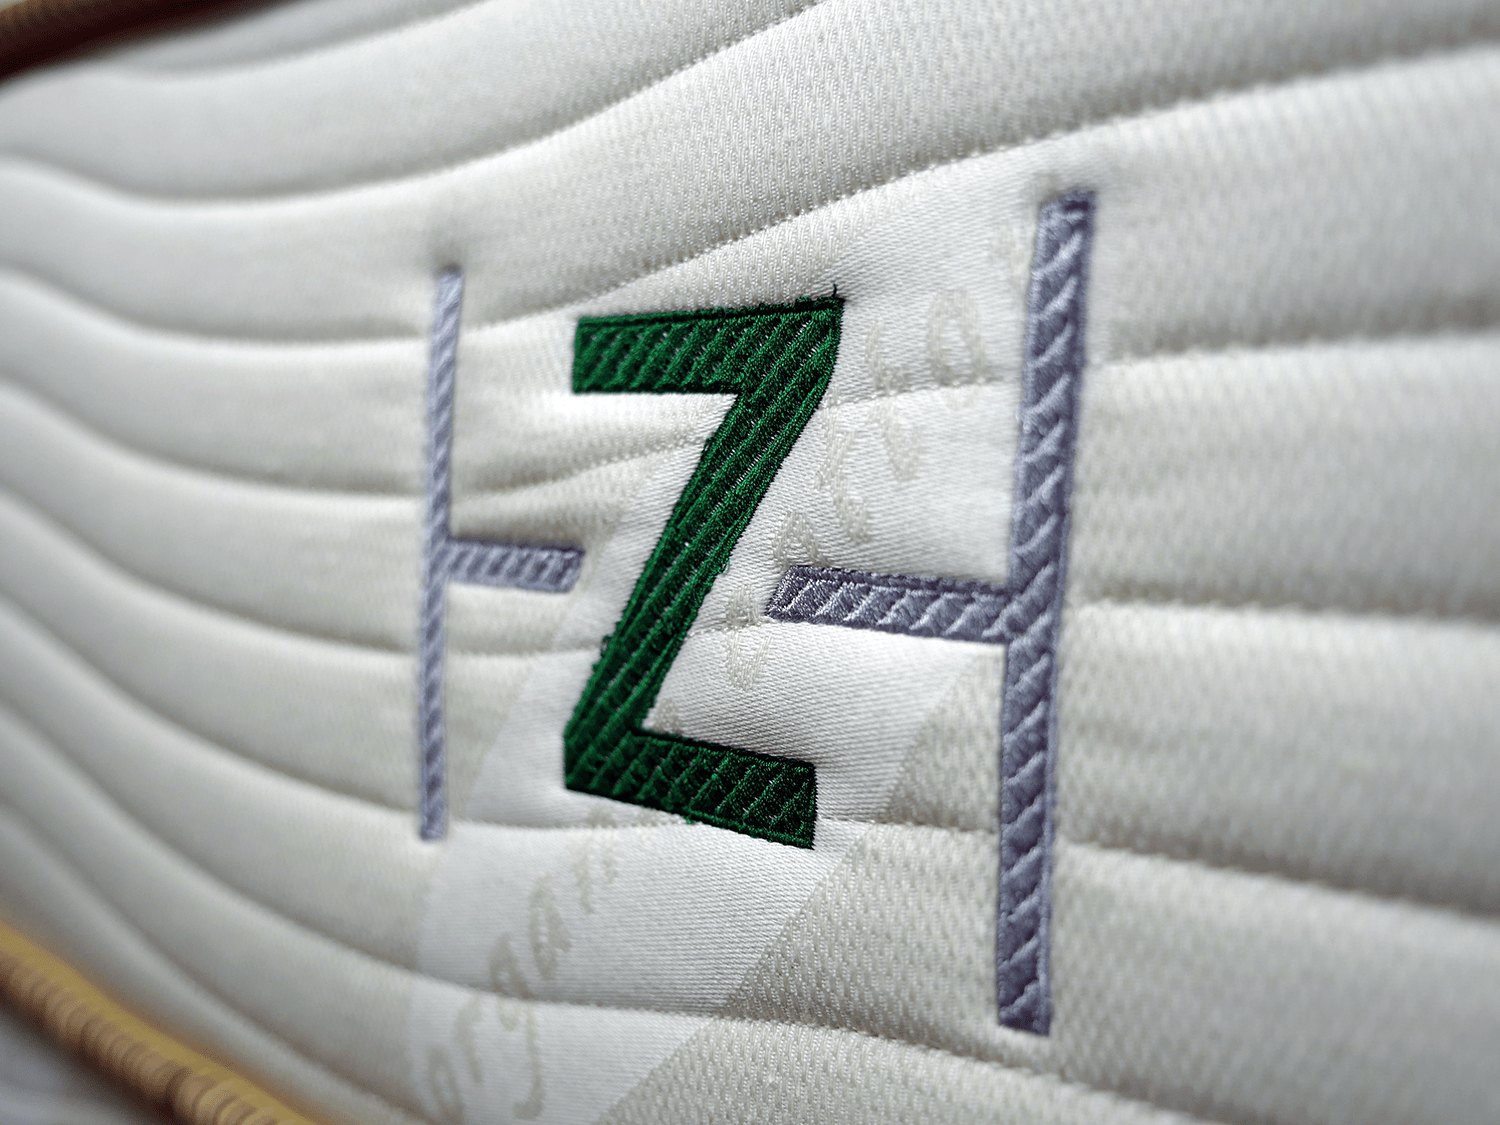 ZenHaven mattress logo stitched into a side panel